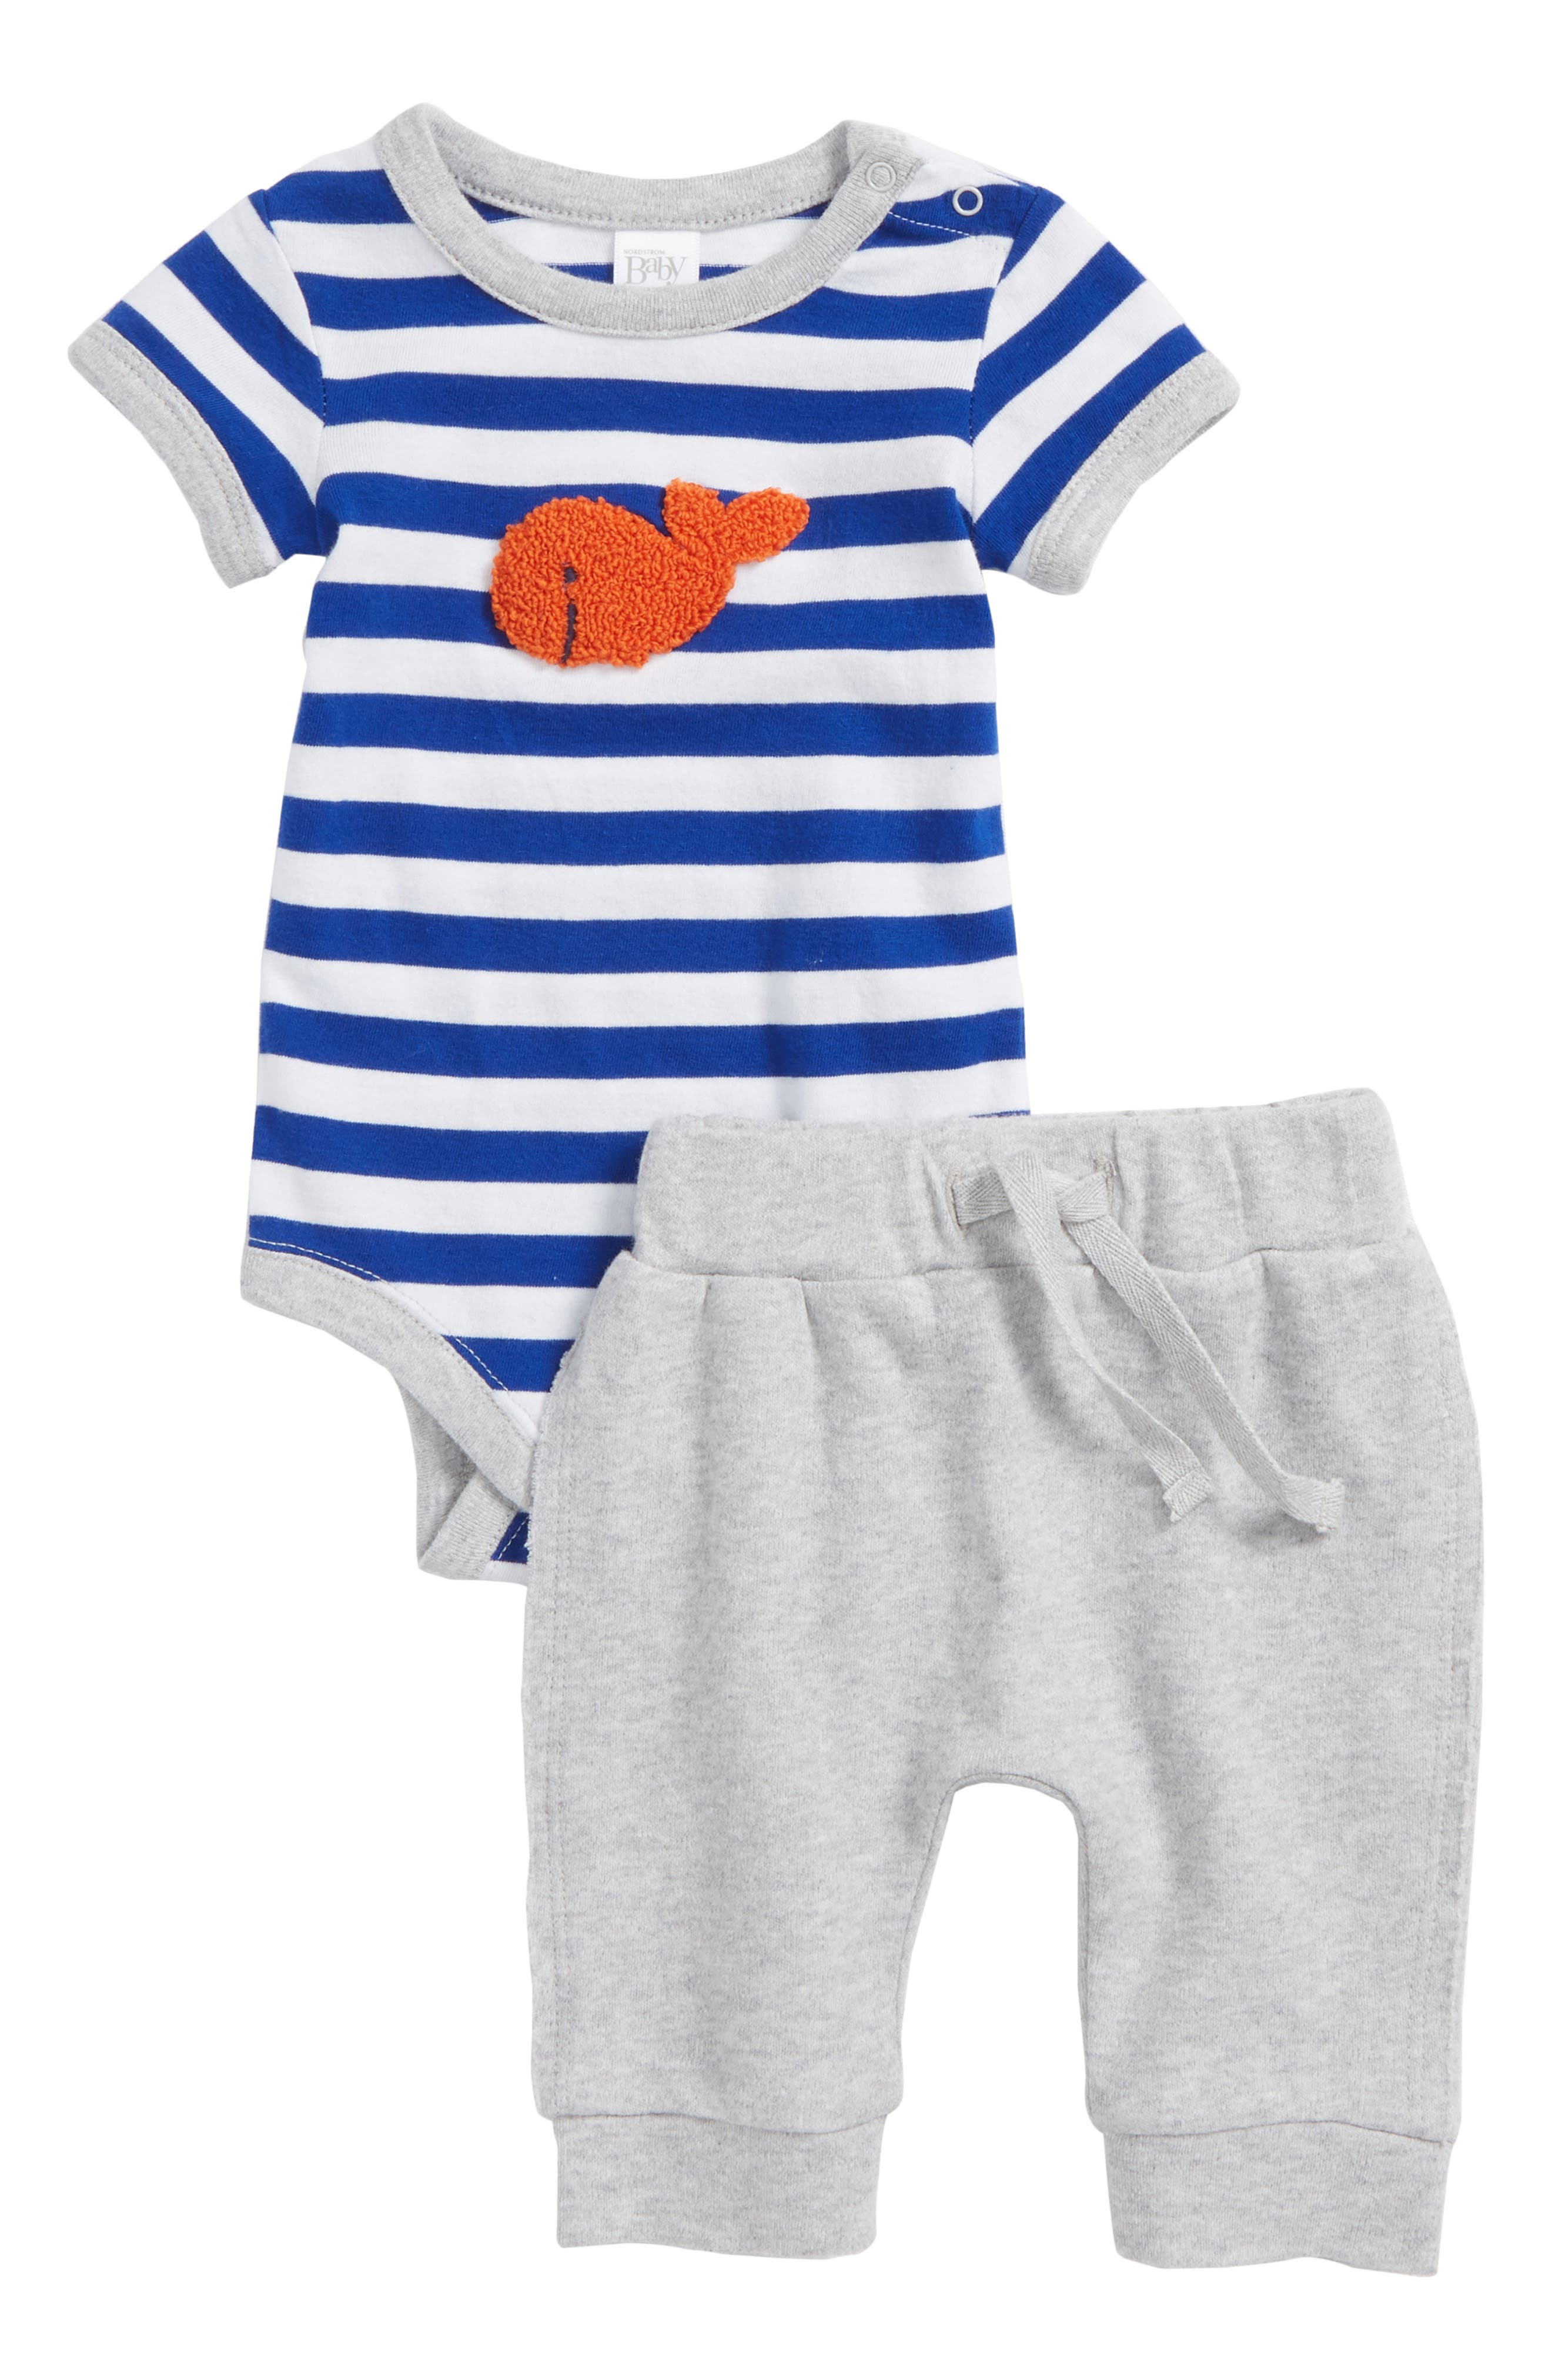 Goldfish Bodysuit & Pants Set,                             Main thumbnail 1, color,                             Blue Surf Goldfish